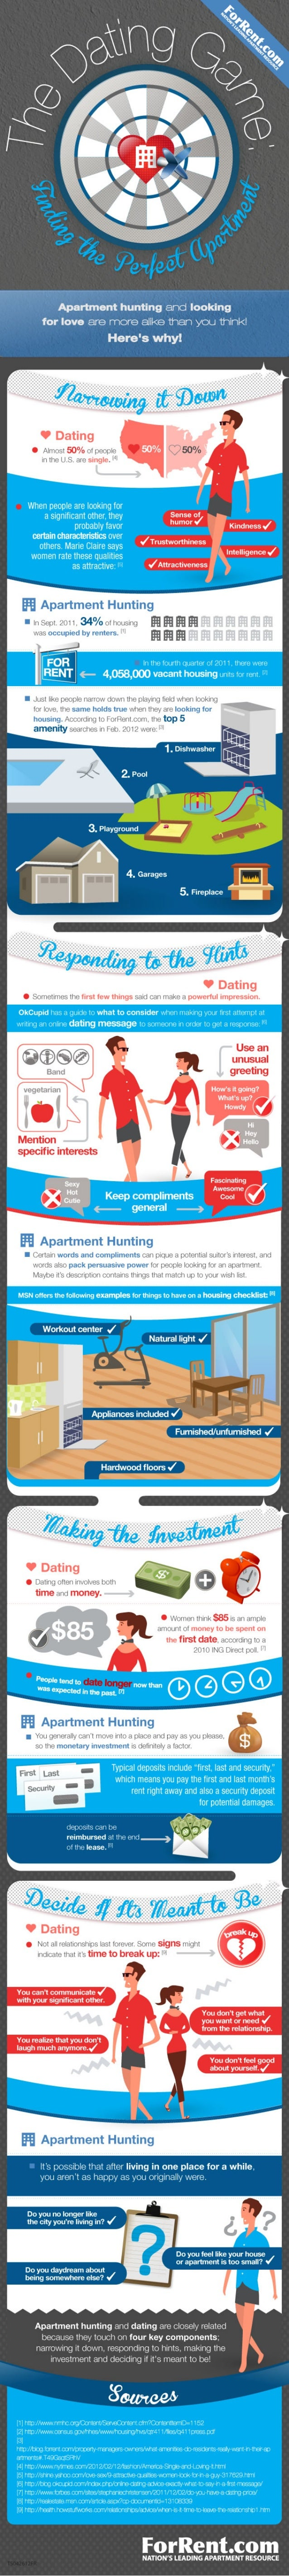 The Dating Game - Finding the Perfect Apartment